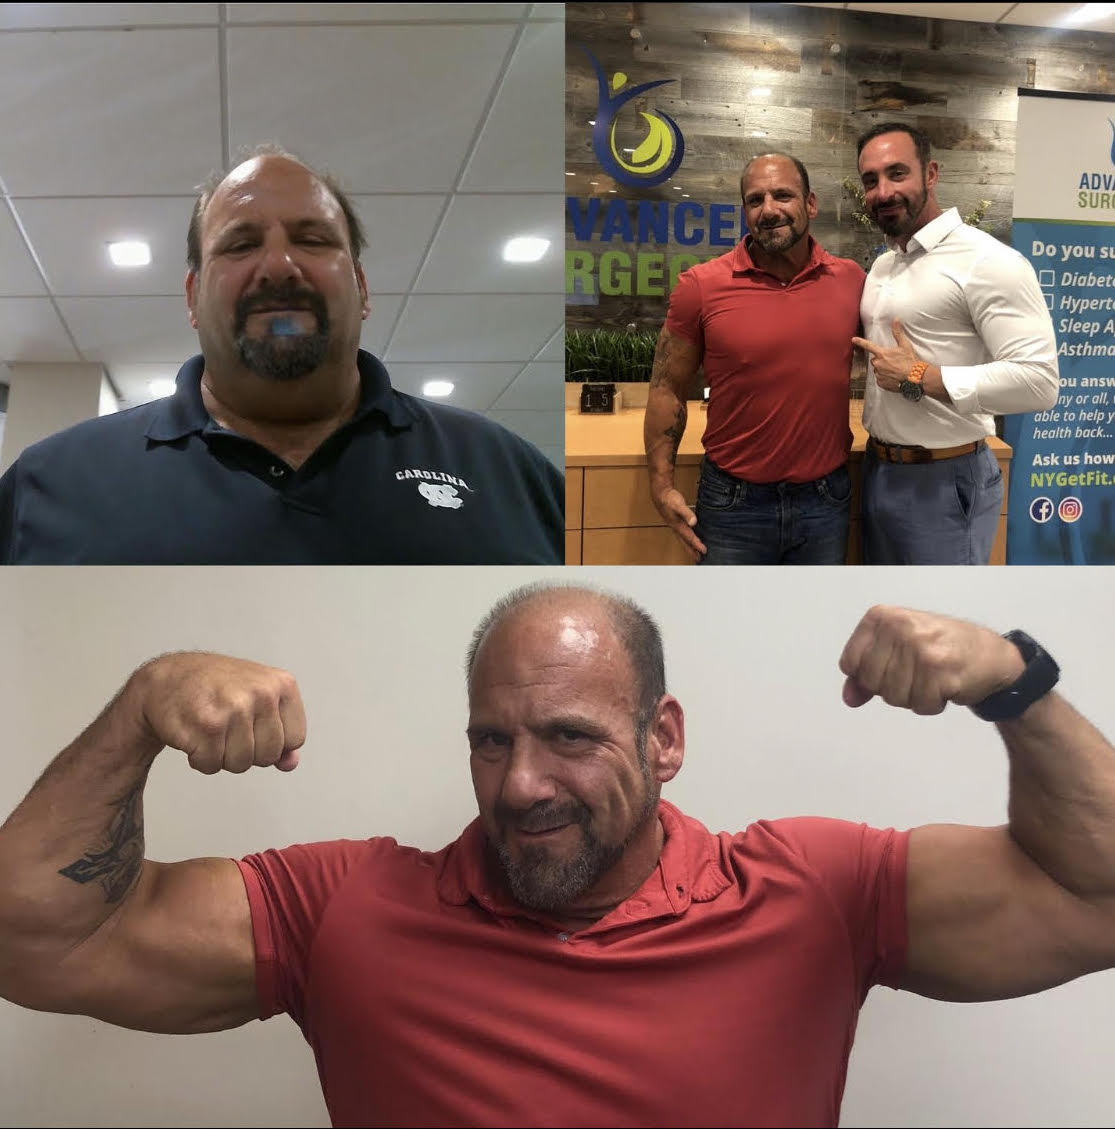 Down 125 lbs 9 months after sleeve thanks to Dr. Maffei and his team! *